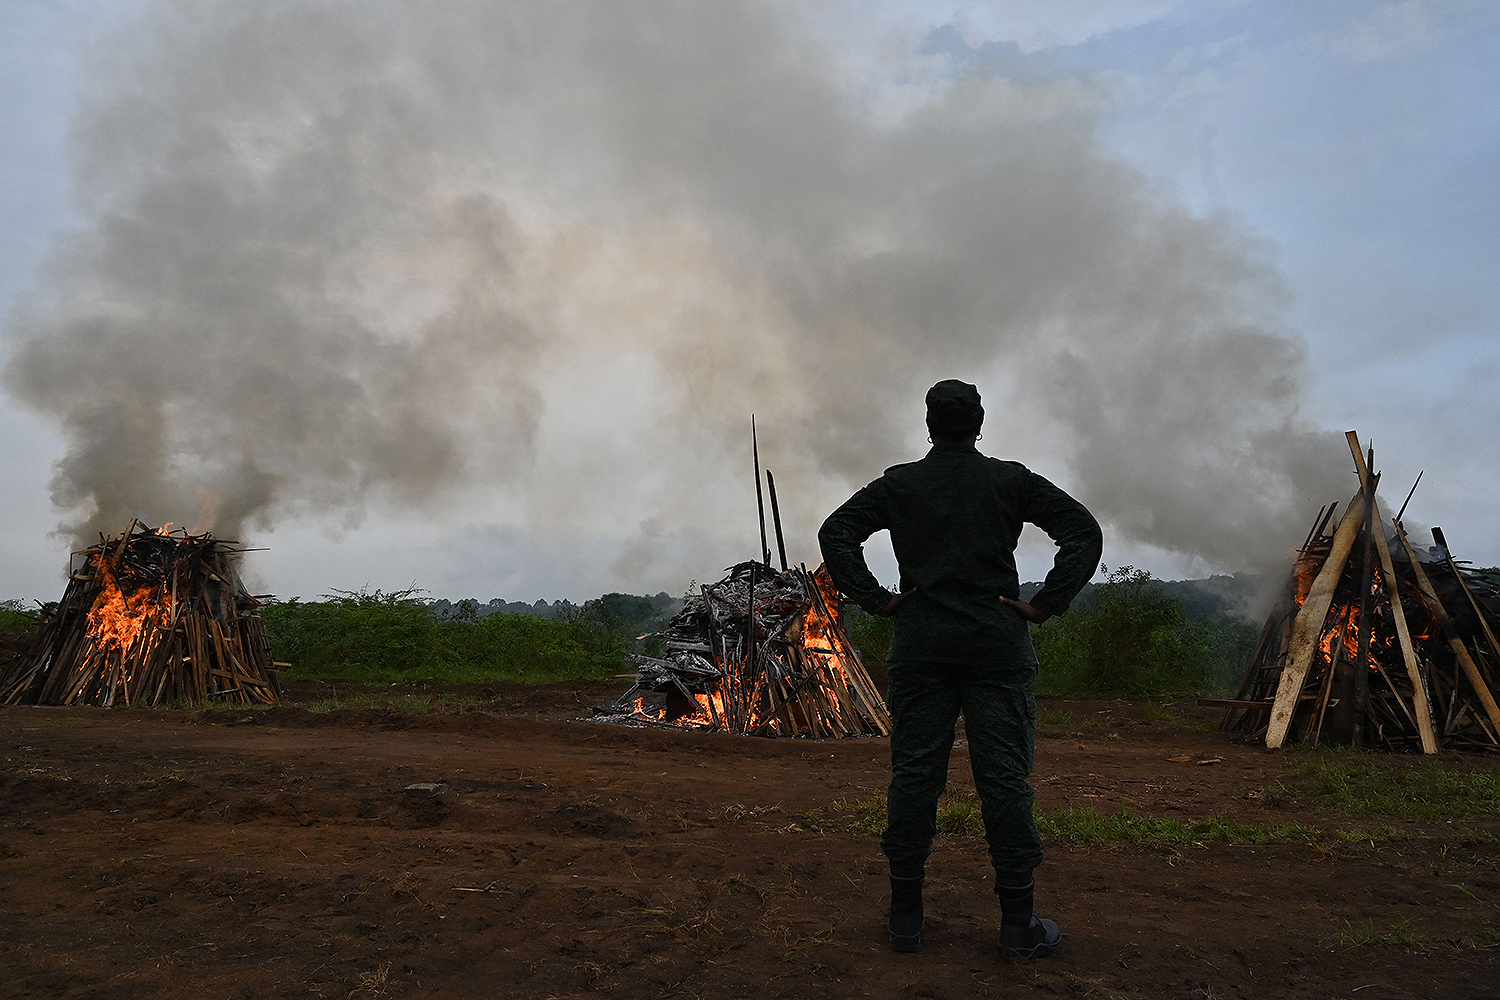 An officer of the Ivory Coast's water and forests ministry watches as bags of pangolin scales seized from poachers in 2017 and 2018 are burned March 3 in the suburb of Abidjan. The pangolin, a delicacy across southeast Asia, is the most trafficked mammal in the world. Beijing announced a total ban on the sale and consumption of the pangolin after the coronavirus outbreak. ISSOUF SANOGO/AFP via Getty Images